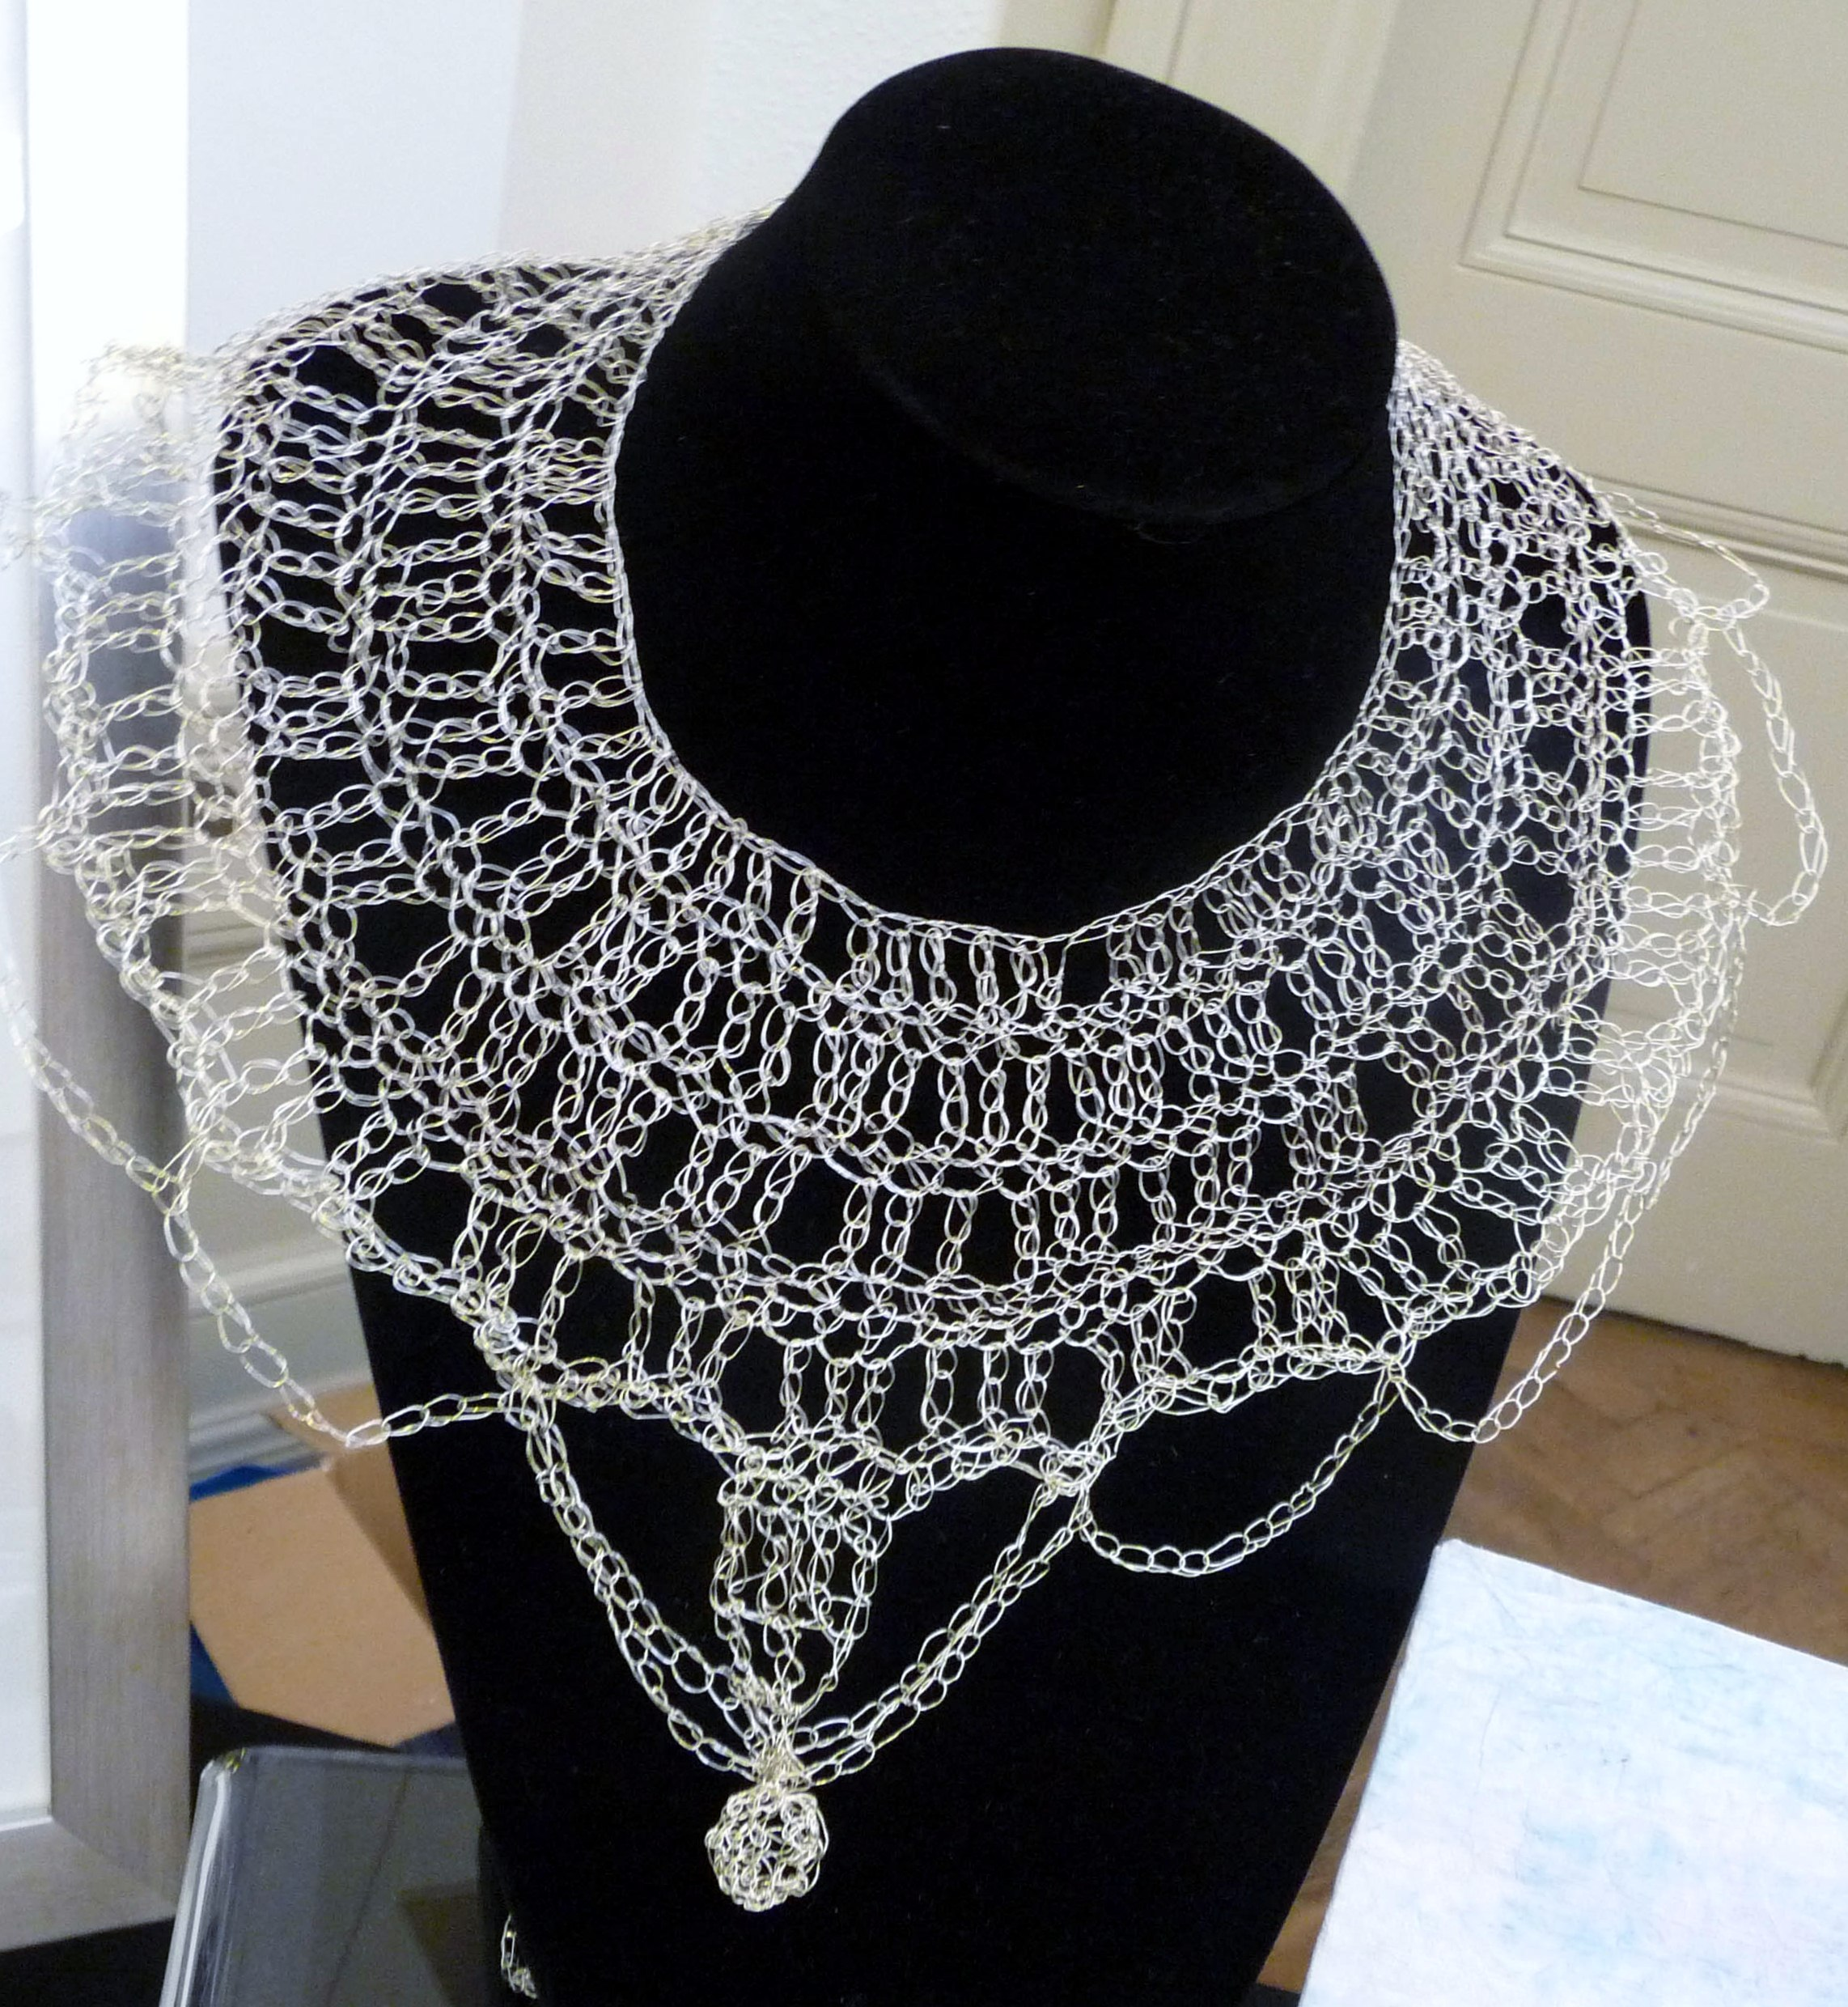 crochet wire necklace by Moya McCarthy, based on Egyptian influences